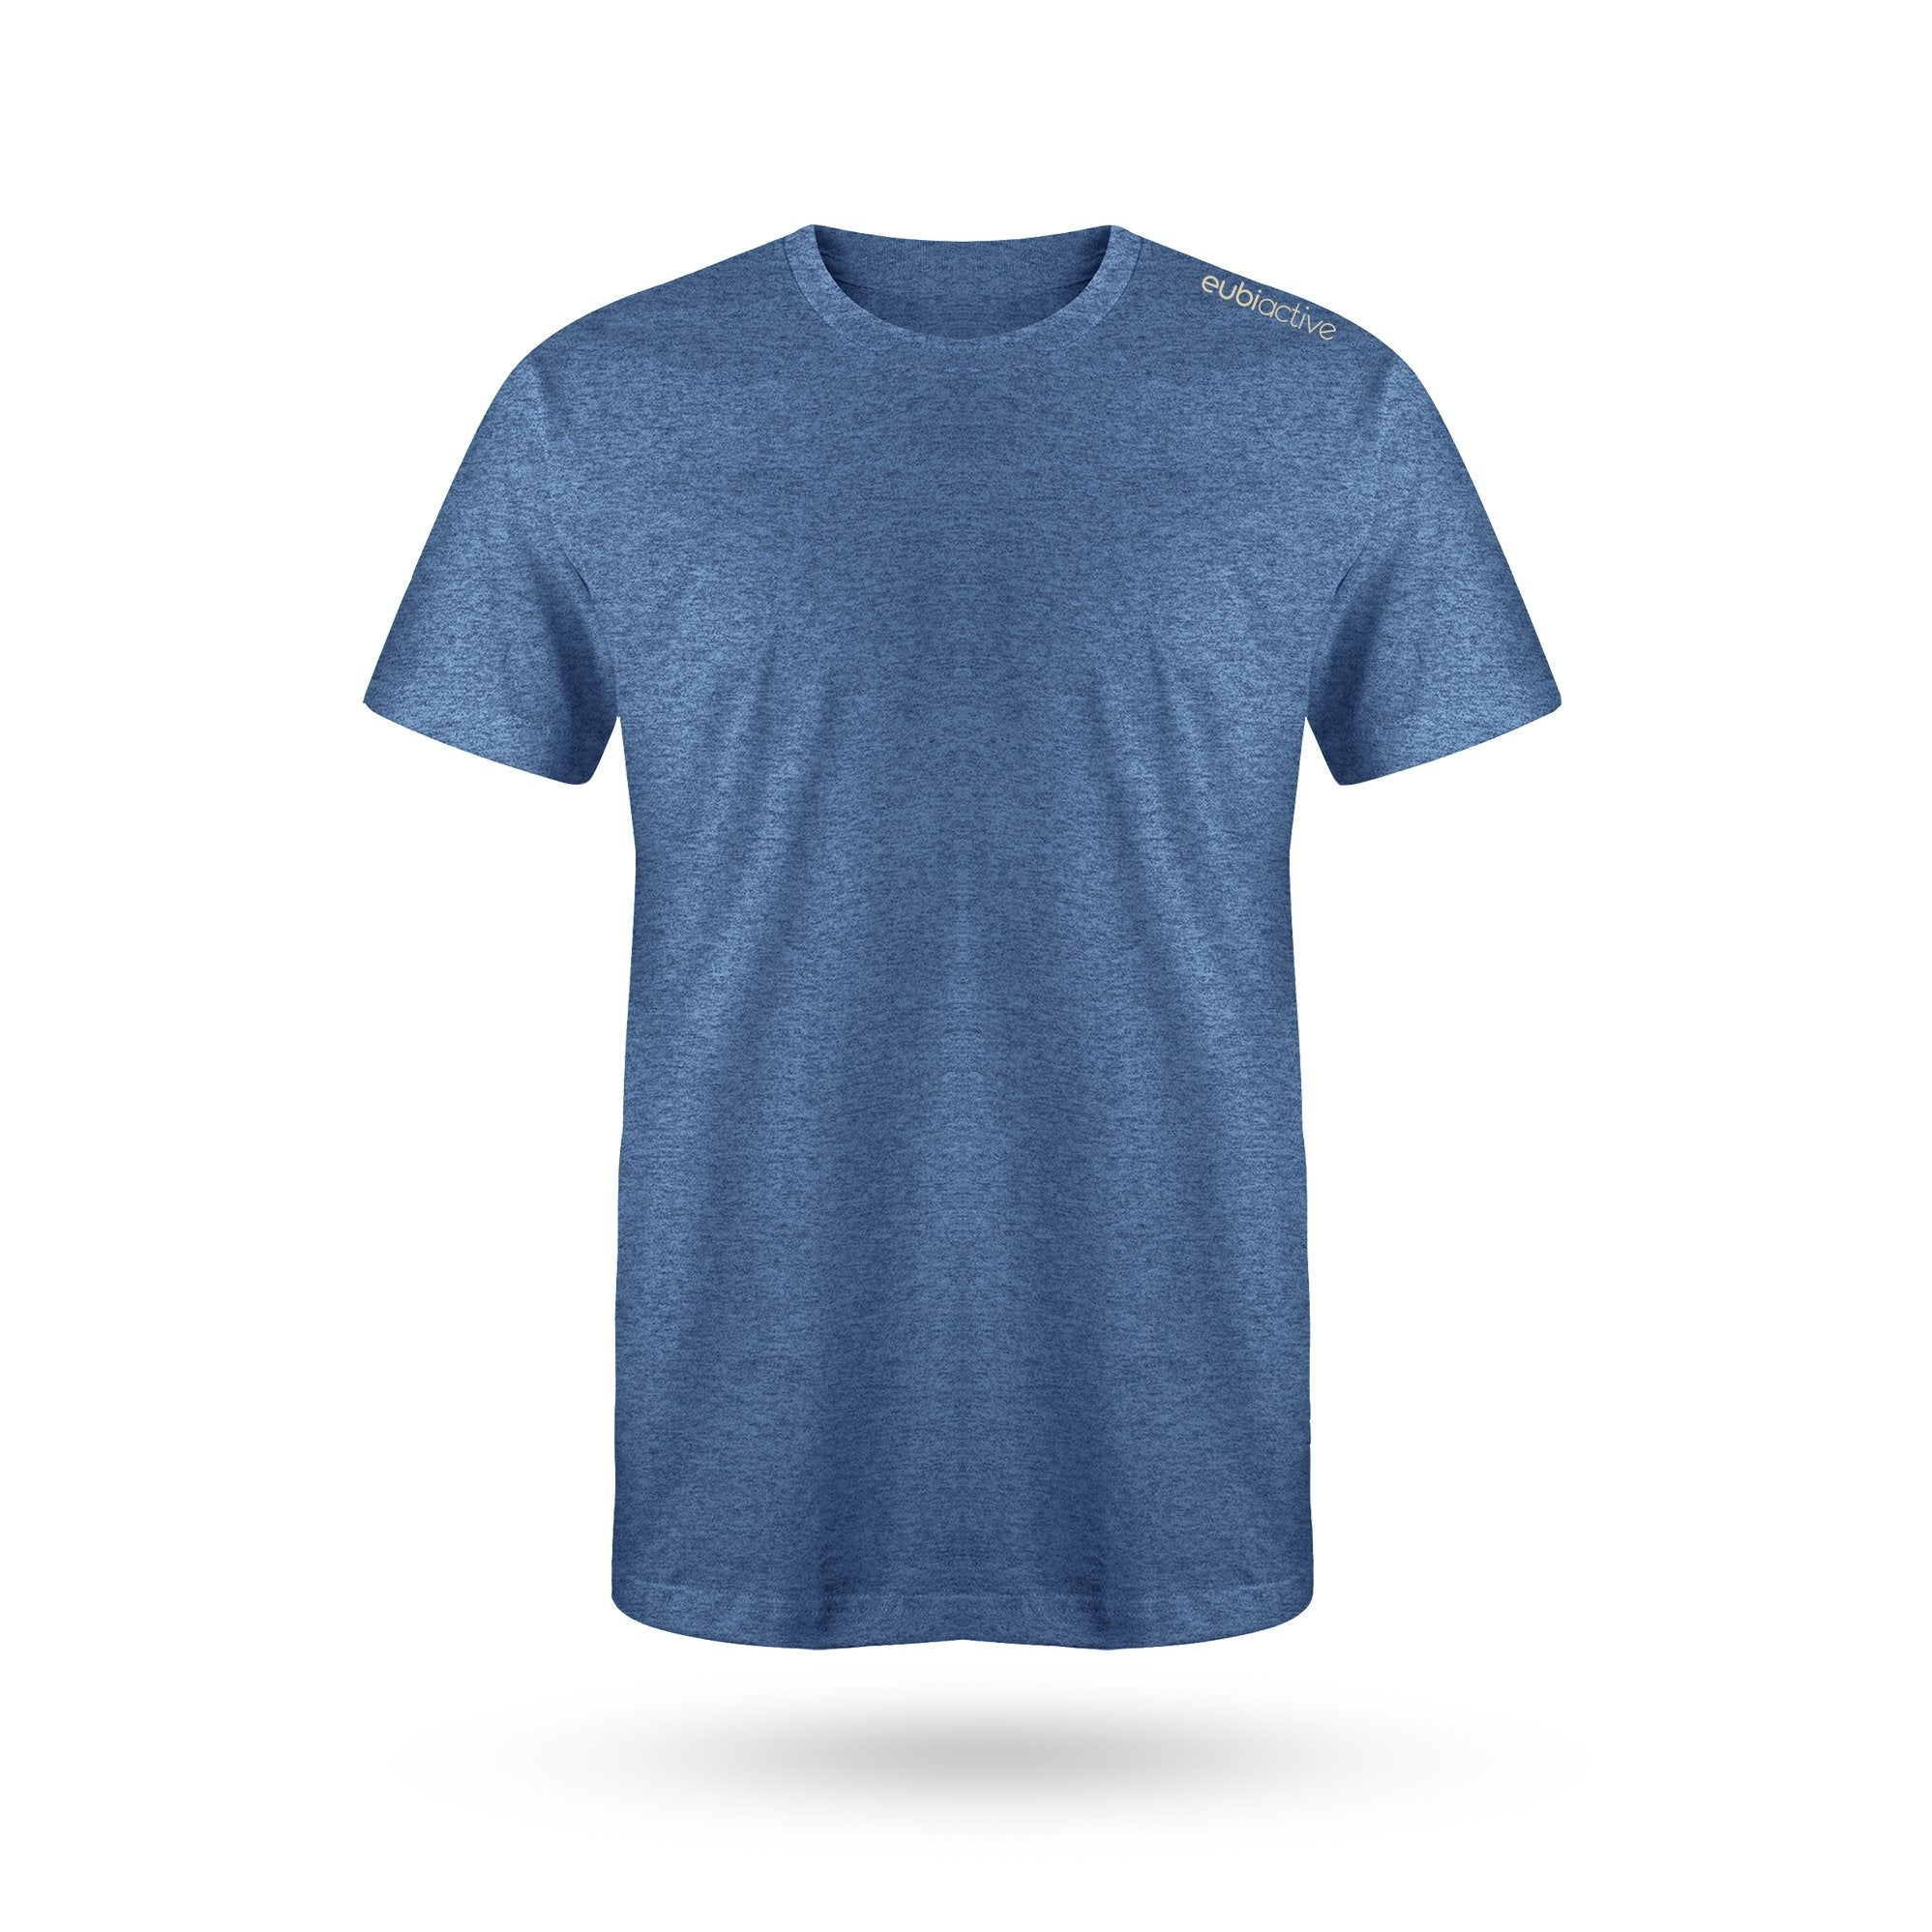 Featherlite Active Tee - Navy Blue